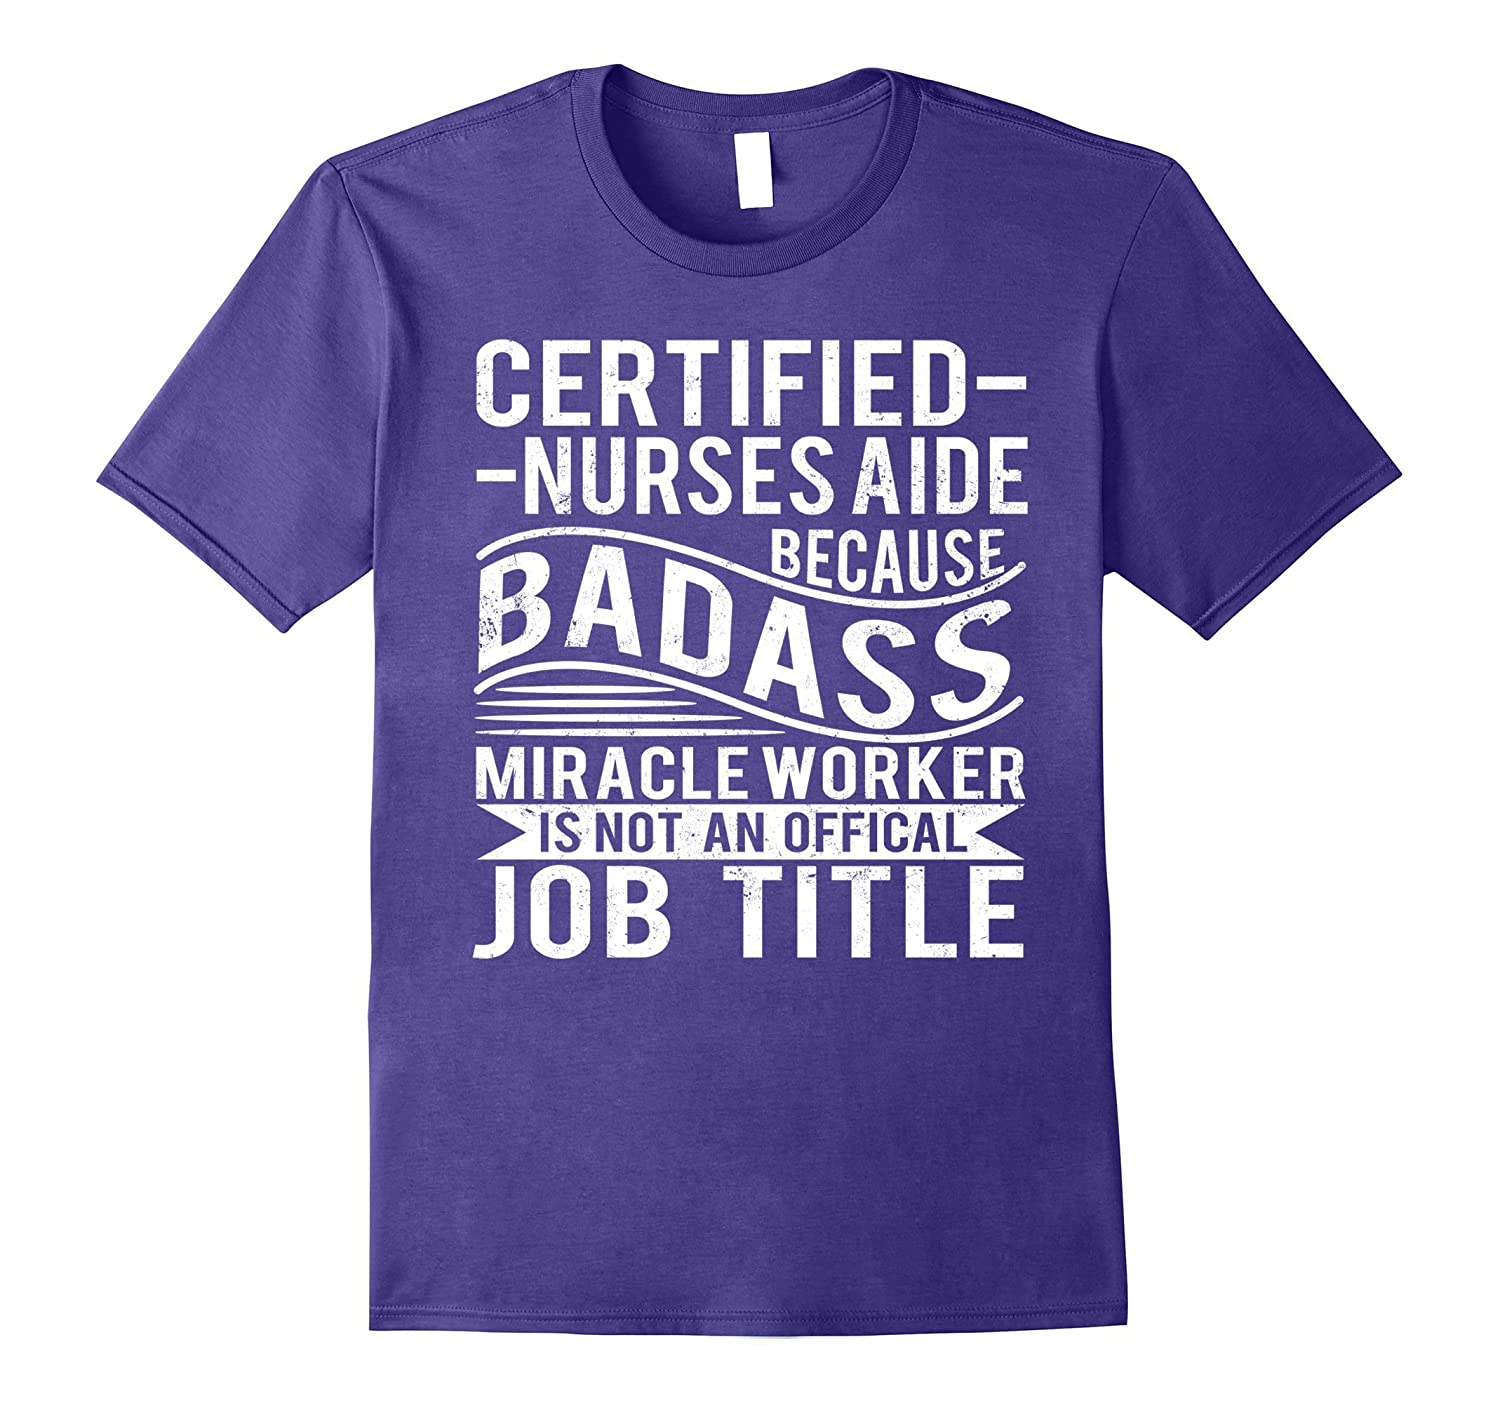 Certified Nurses Aide T-shirt Because Badass Miracle Worker-TJ